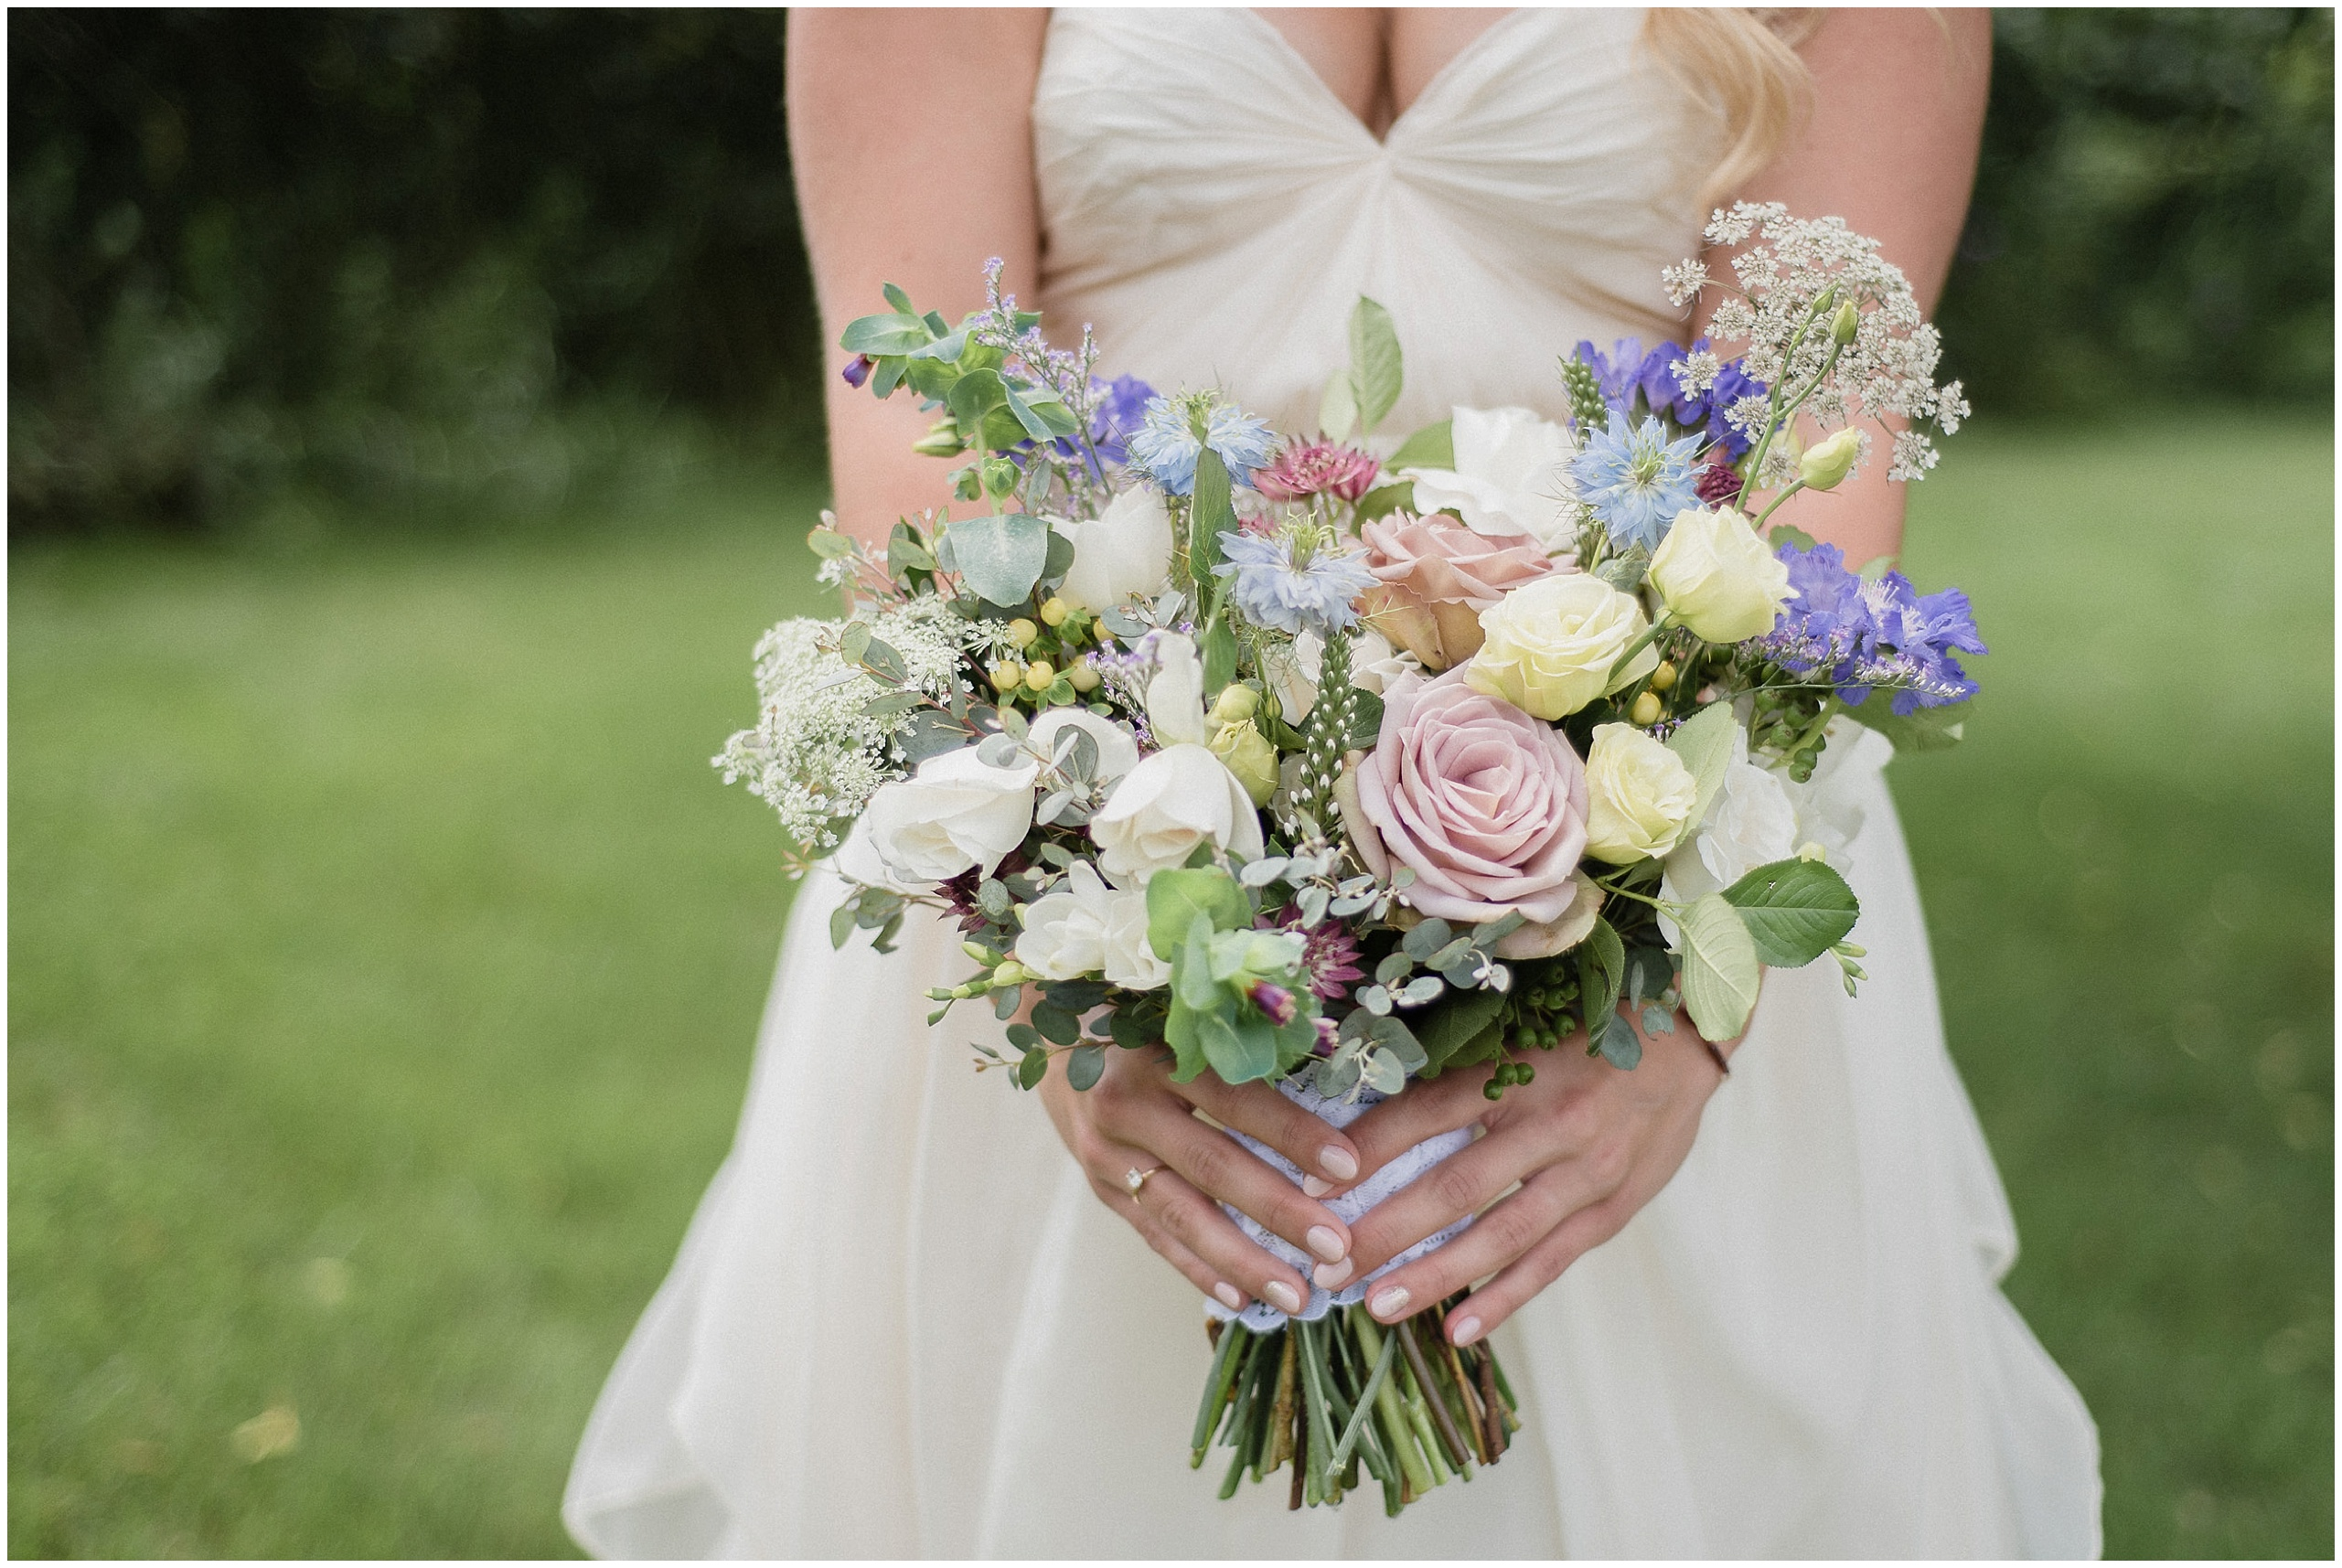 Pastel, garden inspired bouquet by Coriander Girl, photographed by Jenn Kavanagh Photography